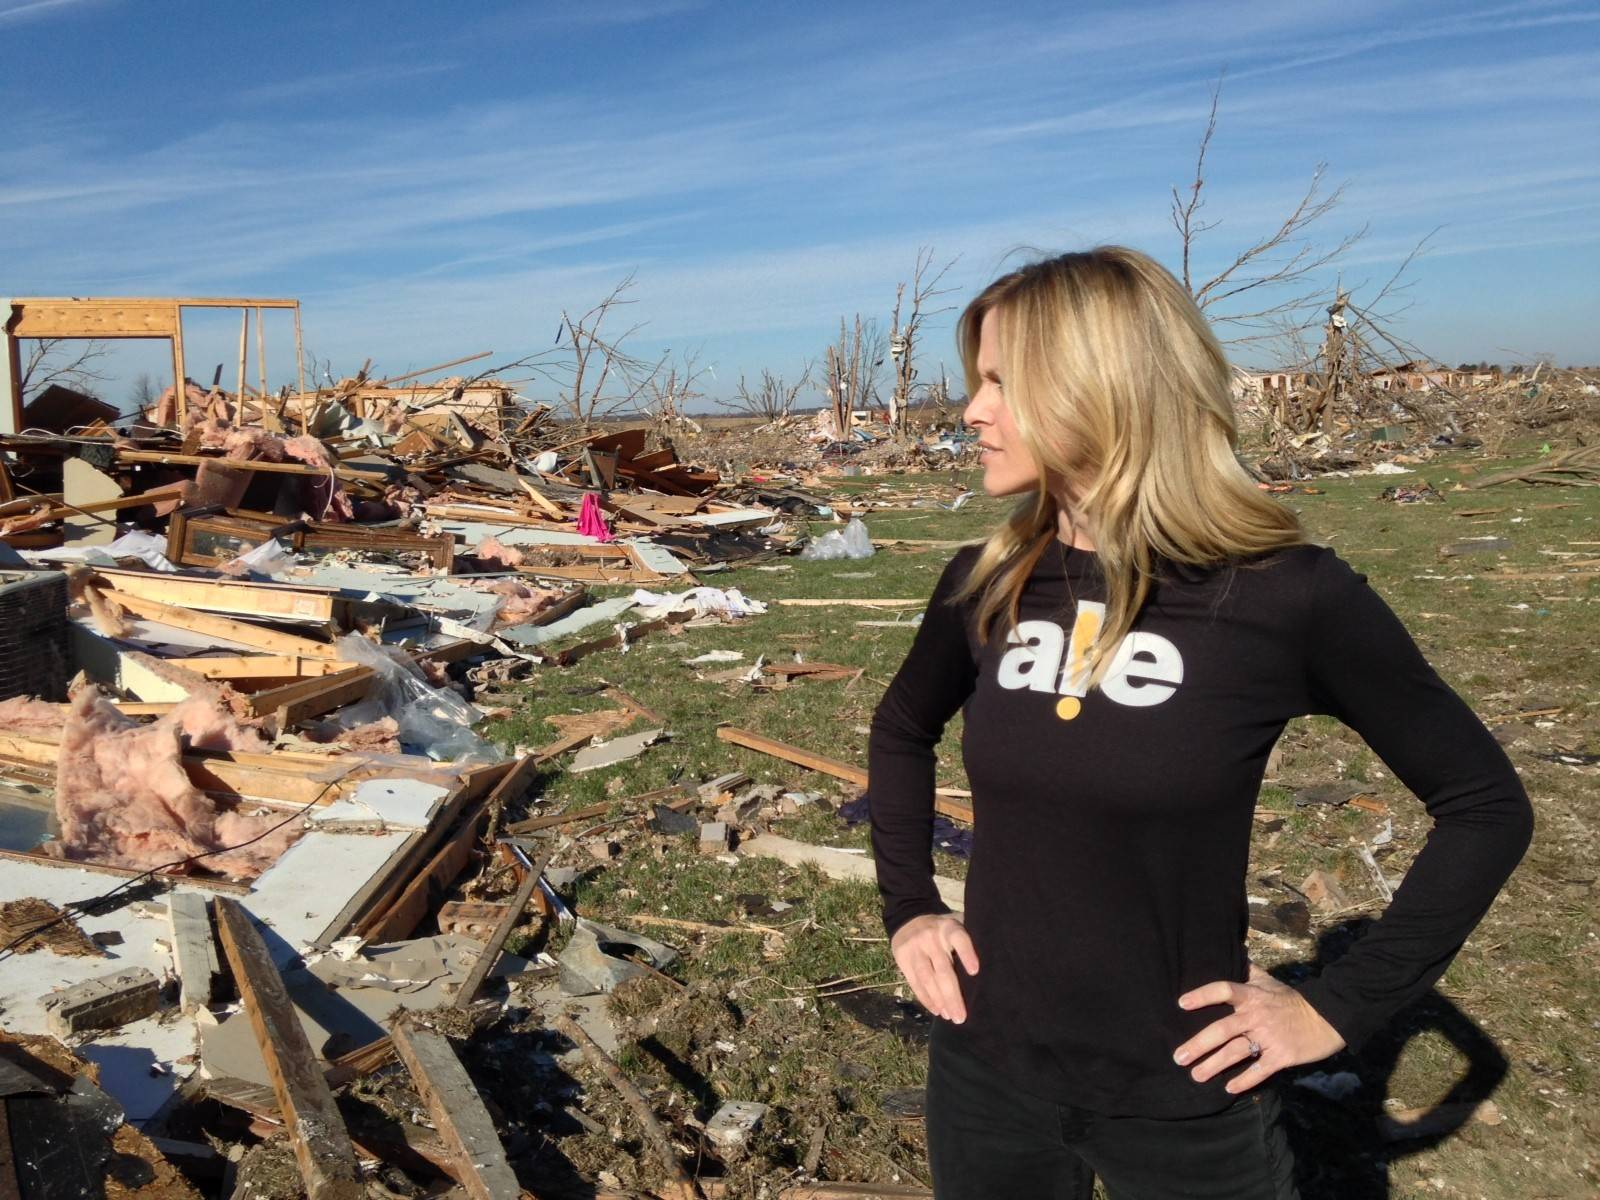 Taylor Koranda was among the employees of ALE Solutions in St. Charles sent to tornado-ravaged Washington, Illinois, to help the abruptly homeless find places to stay.